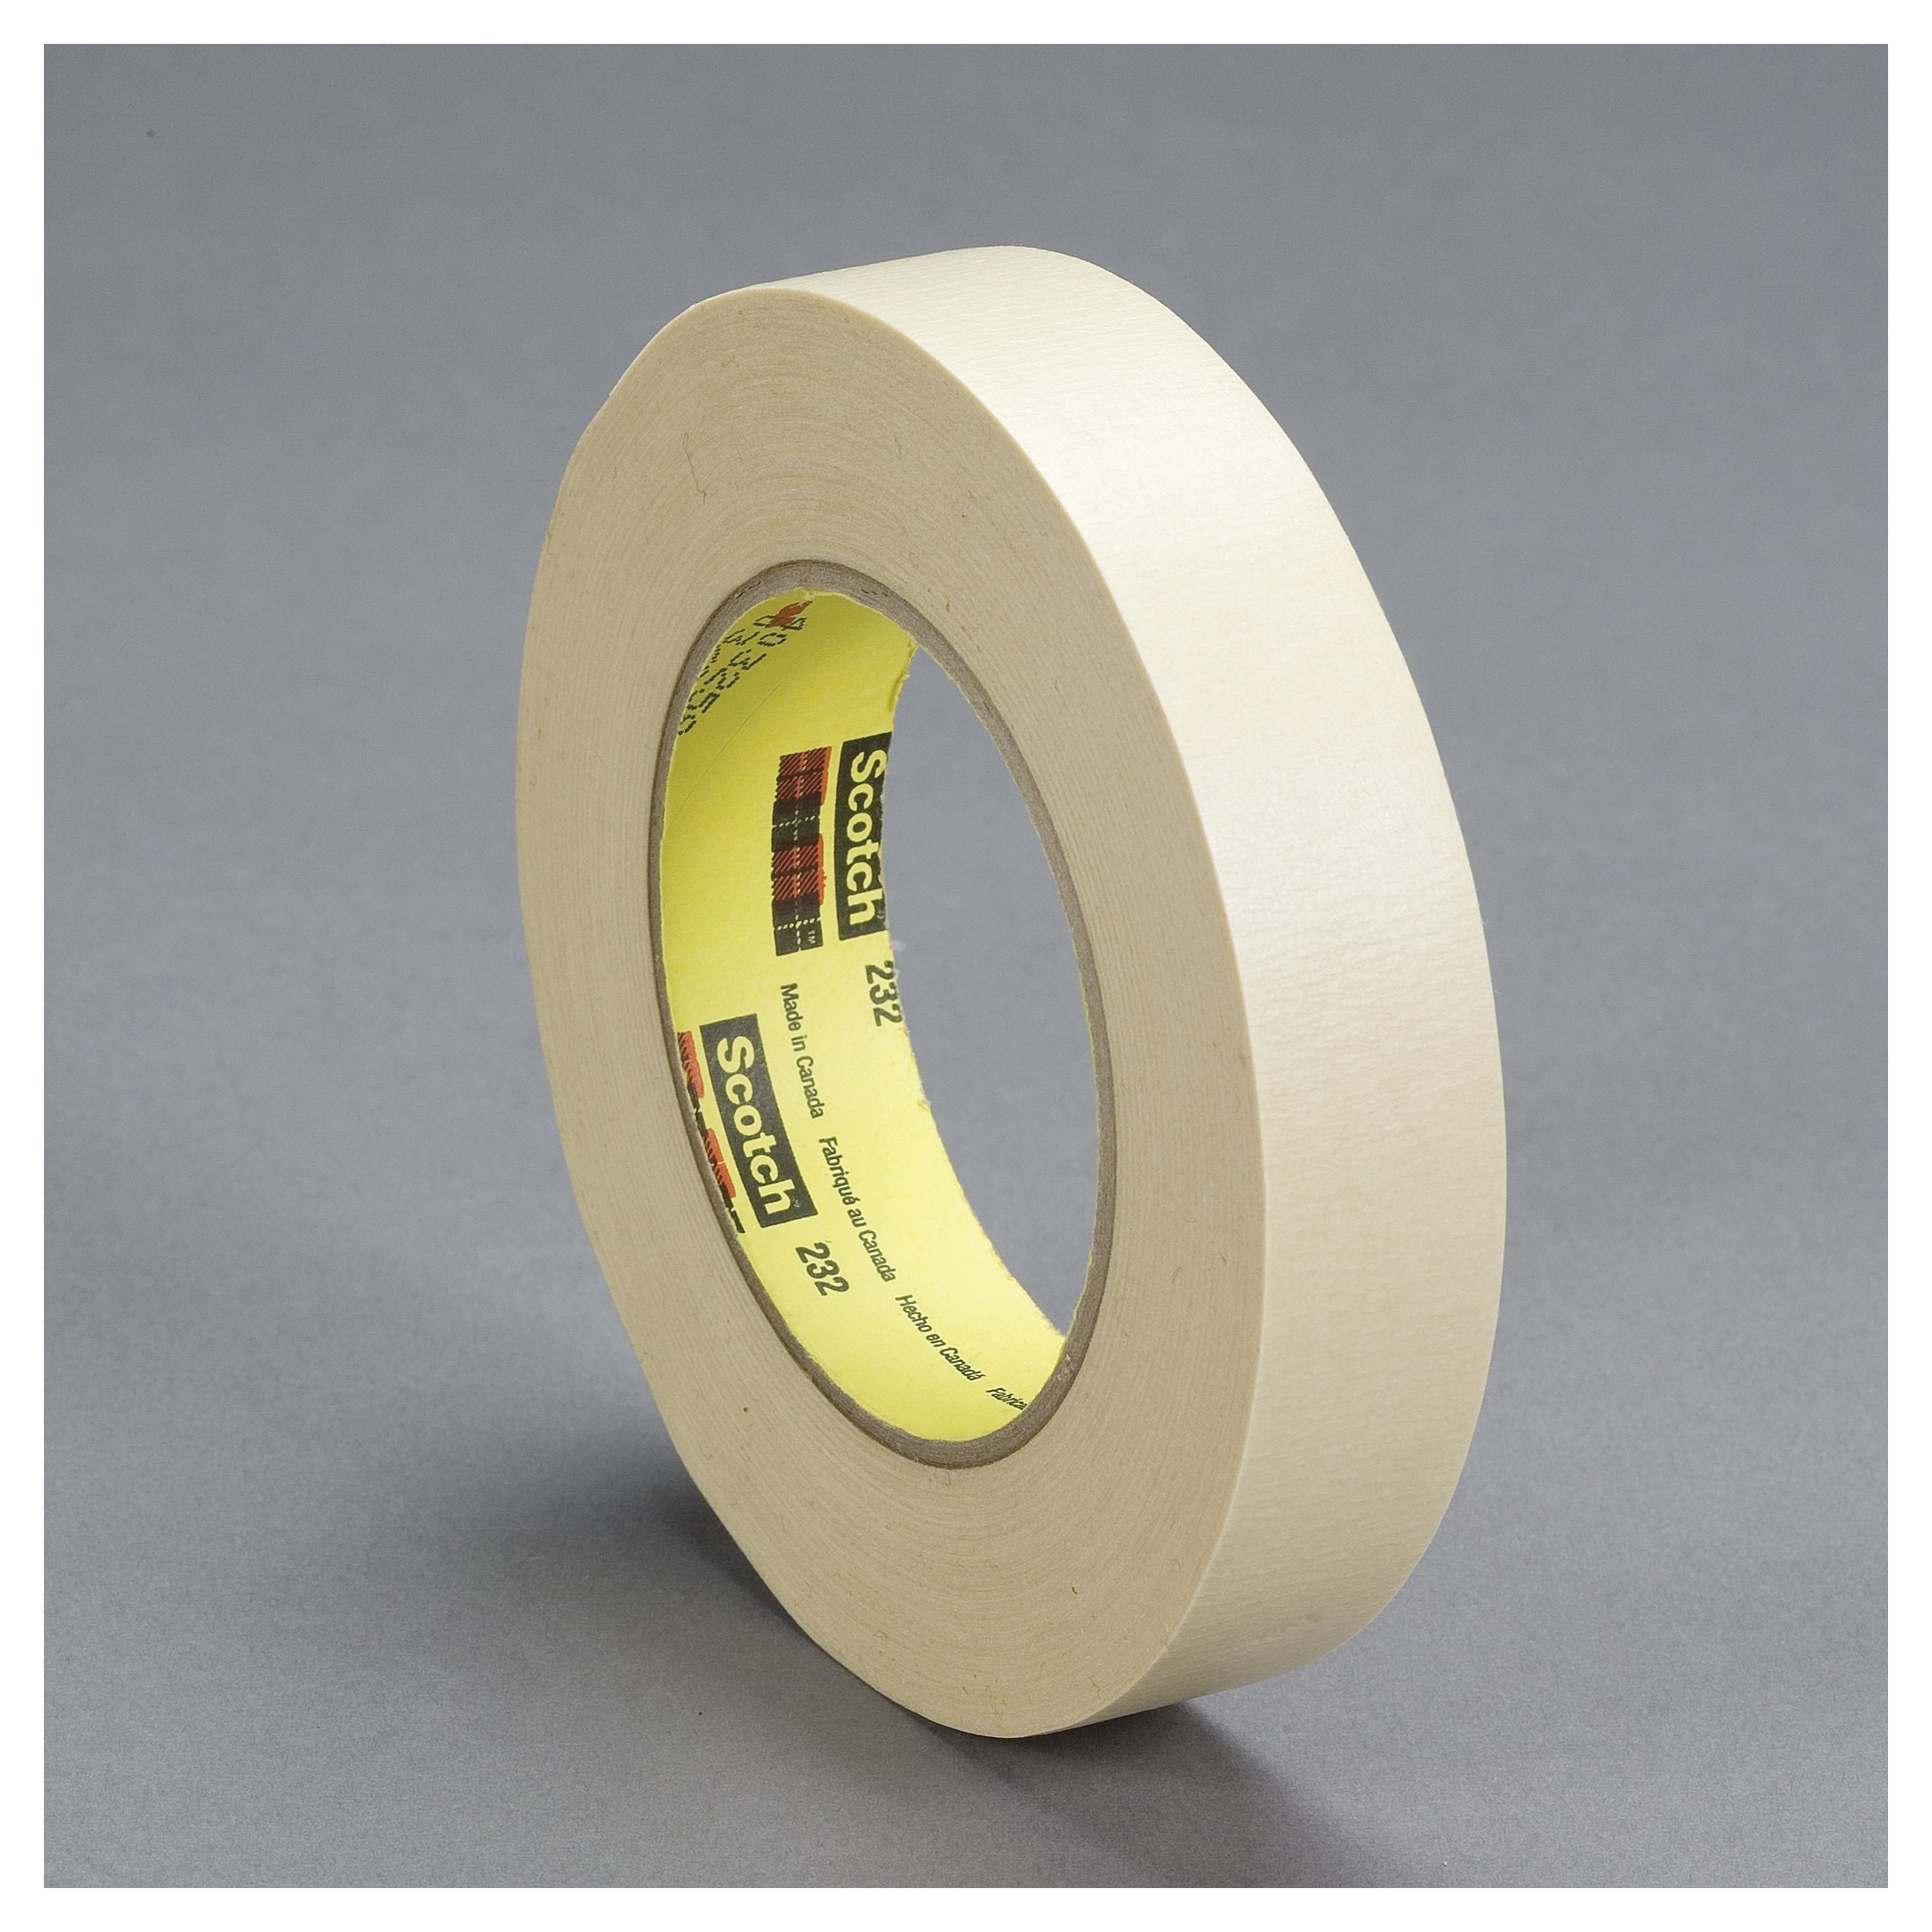 Scotch® 021200-71134 Masking Tape, 55 m L x 48 mm W, 0.001 in THK, Rubber Adhesive, Crepe Paper Backing